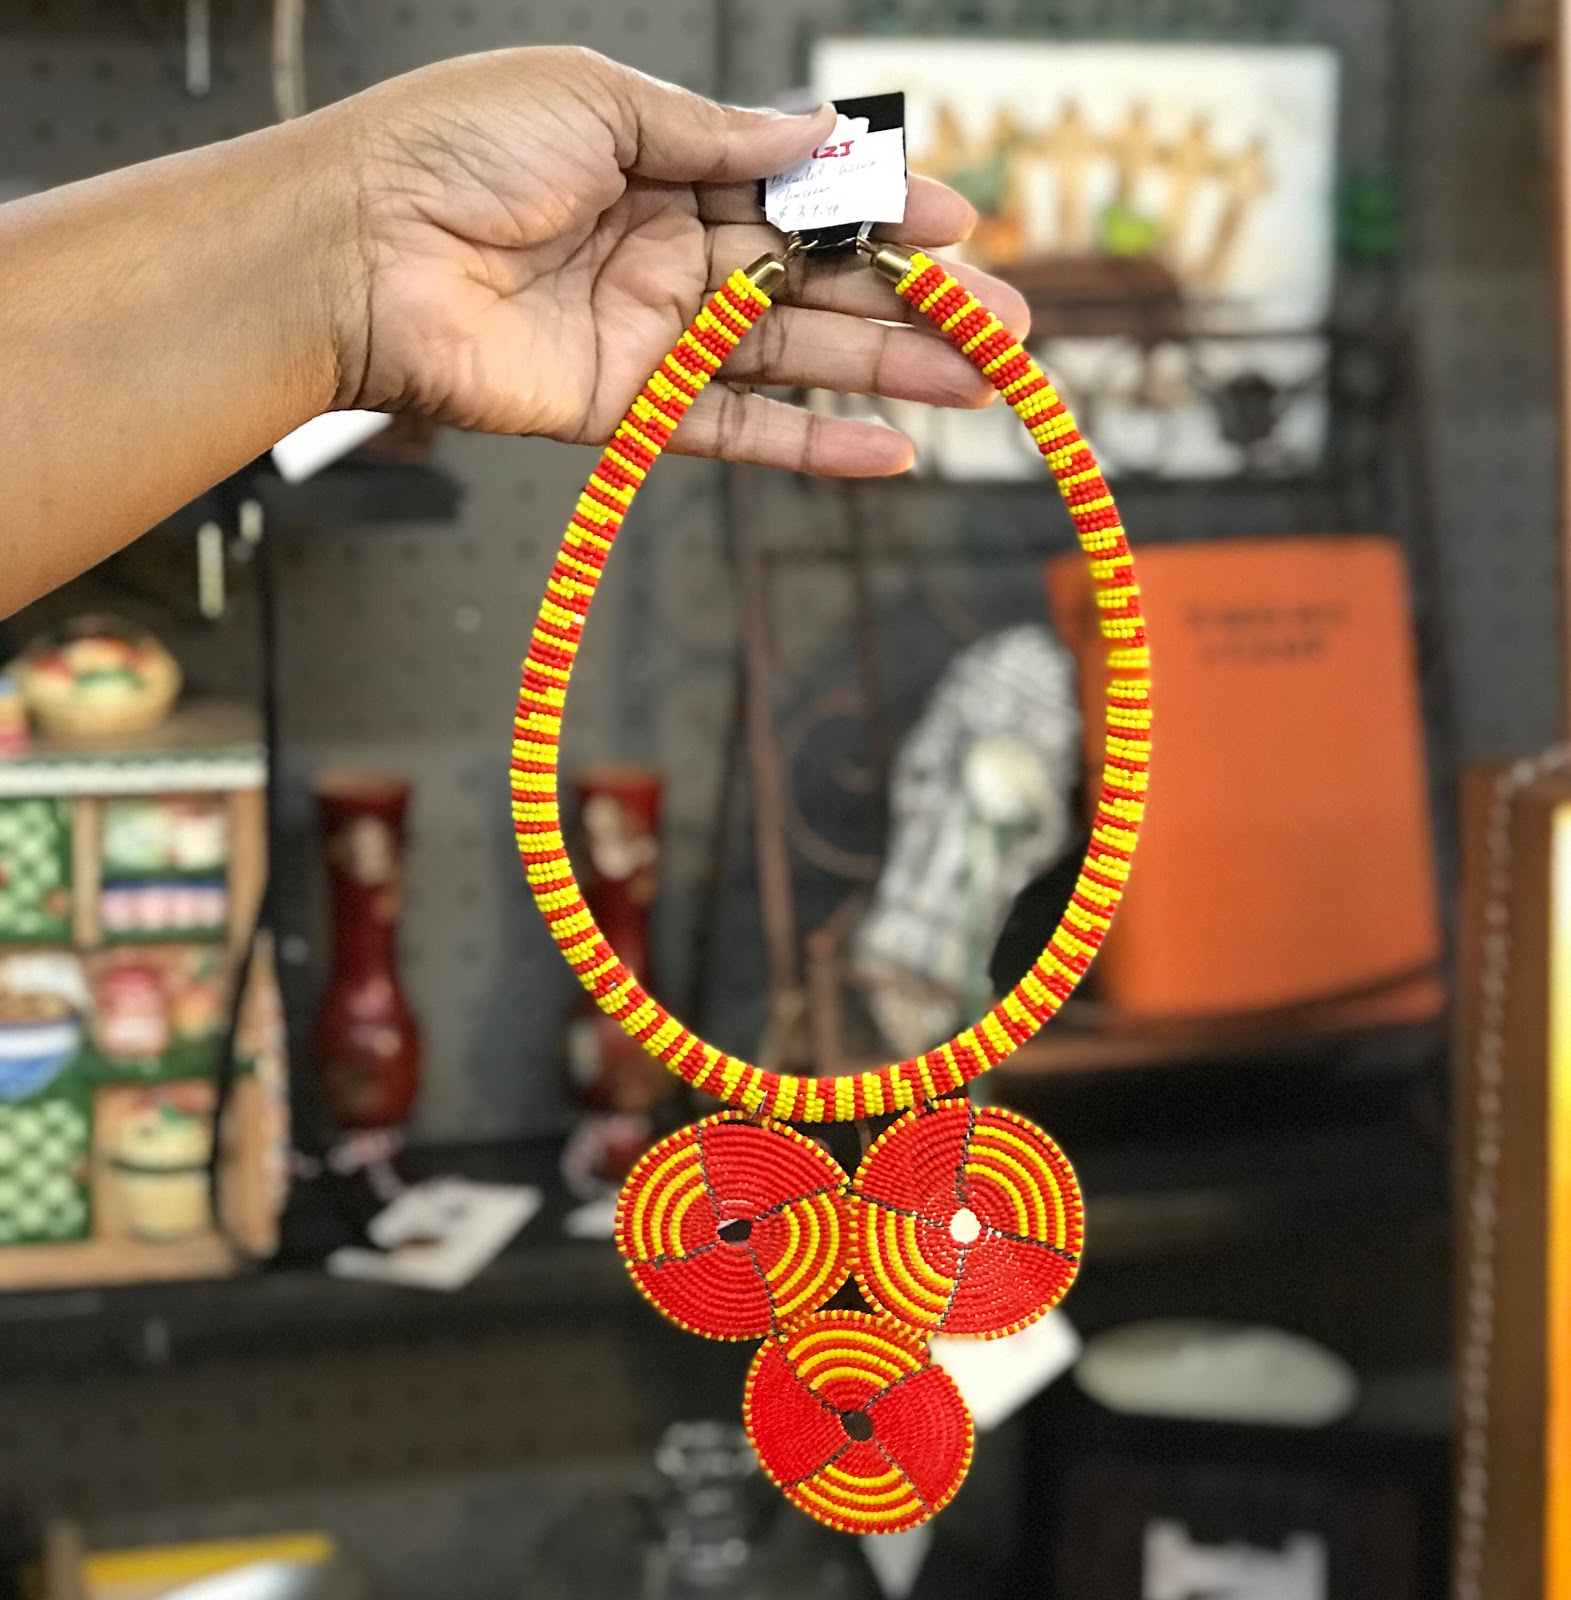 Image: Yellow and Orange Seed Bead Necklace: This is how I will spice up my wardrobe this year. Spice And Color On Color On Color!